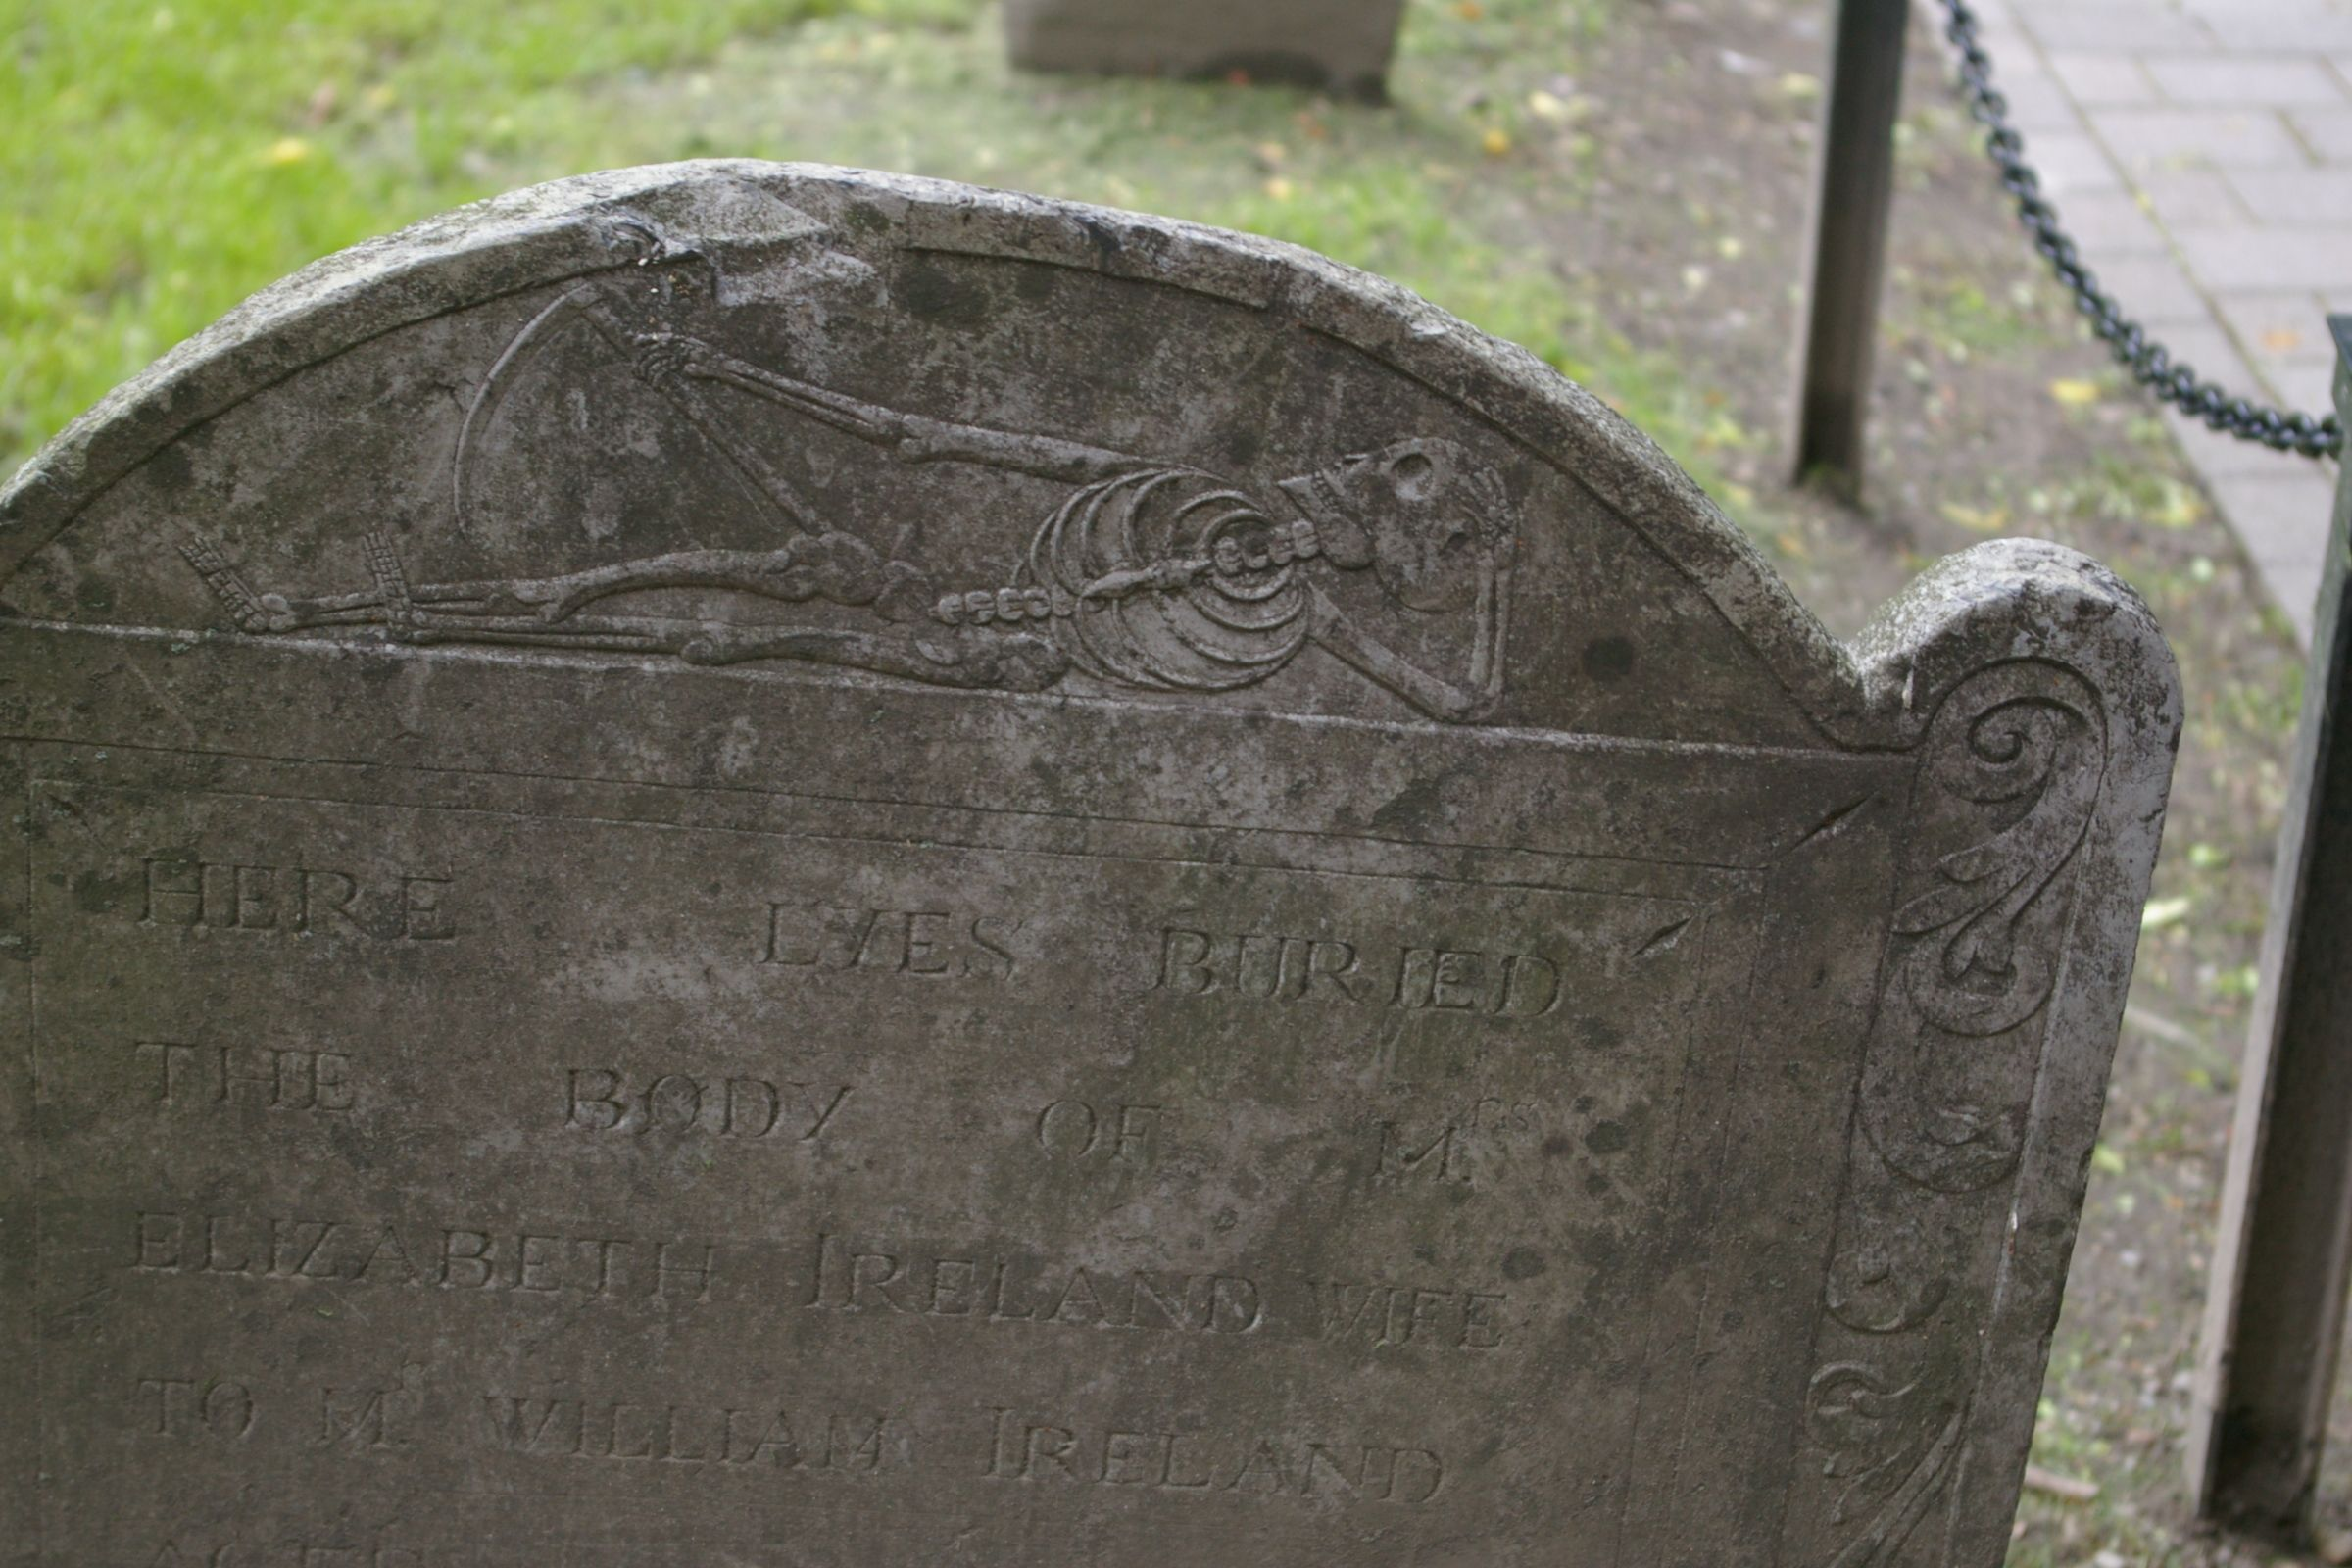 Death with a scythe top this stone in Boston's Granary burying ground.